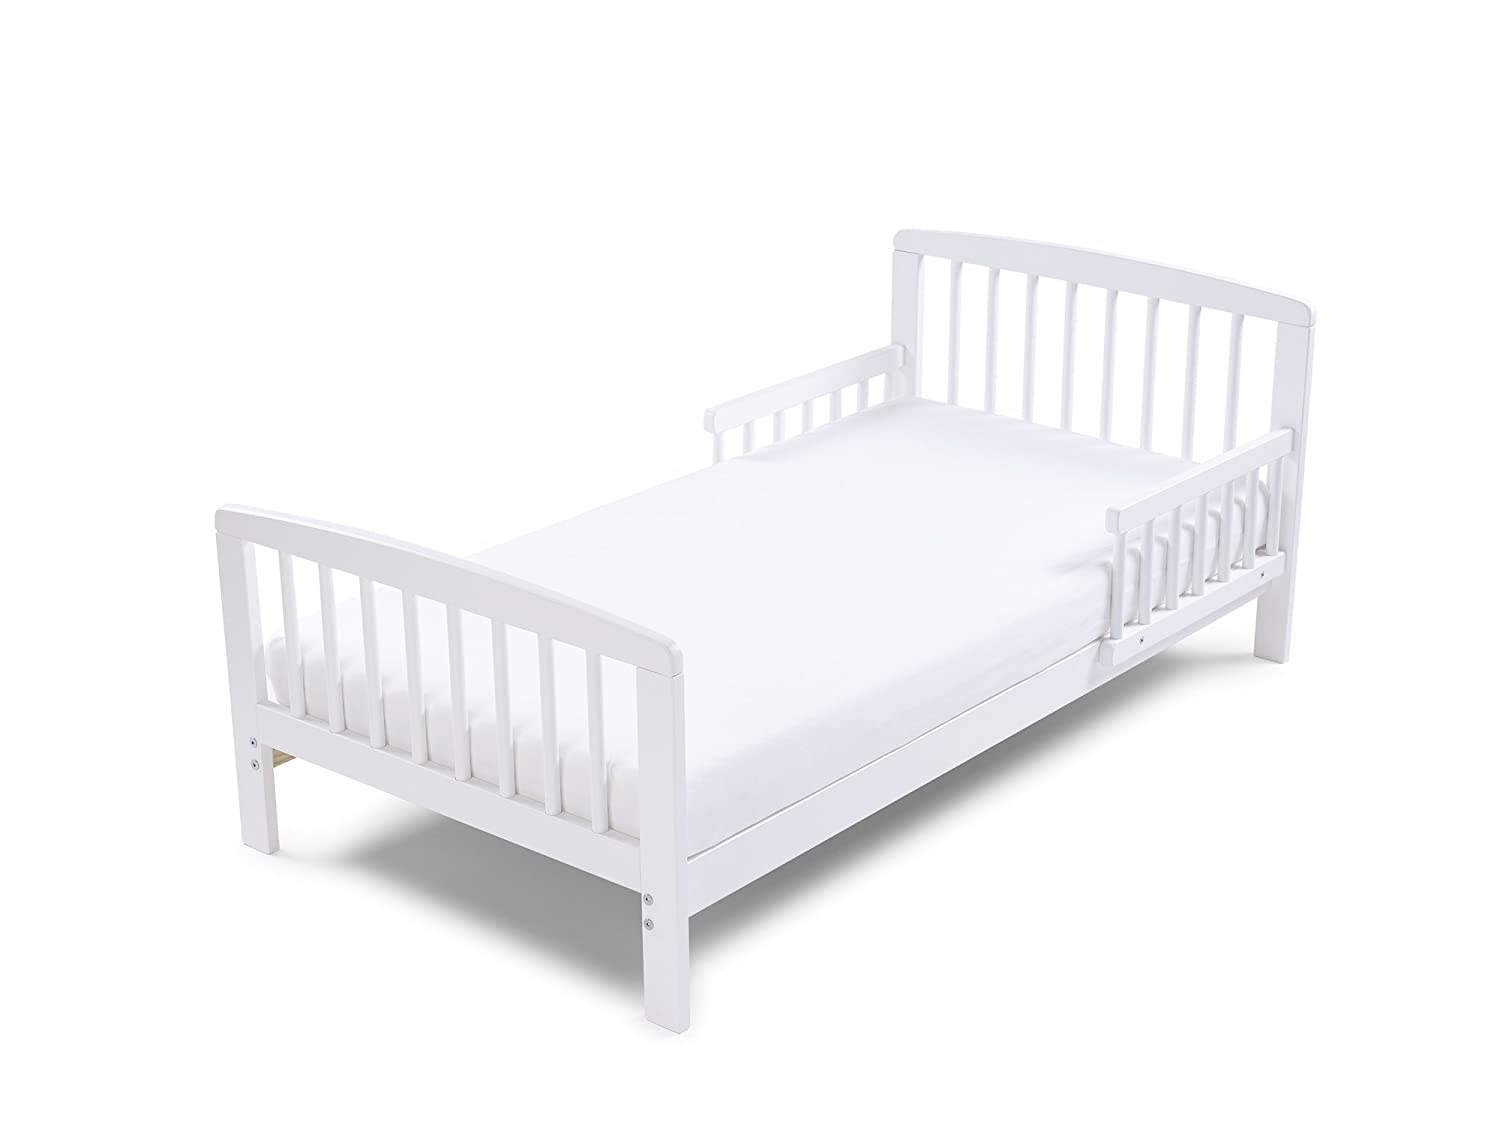 Poppys Playground Eve - White Junior Toddler Bed & Deluxe sprung Mattress Poppy's Playground